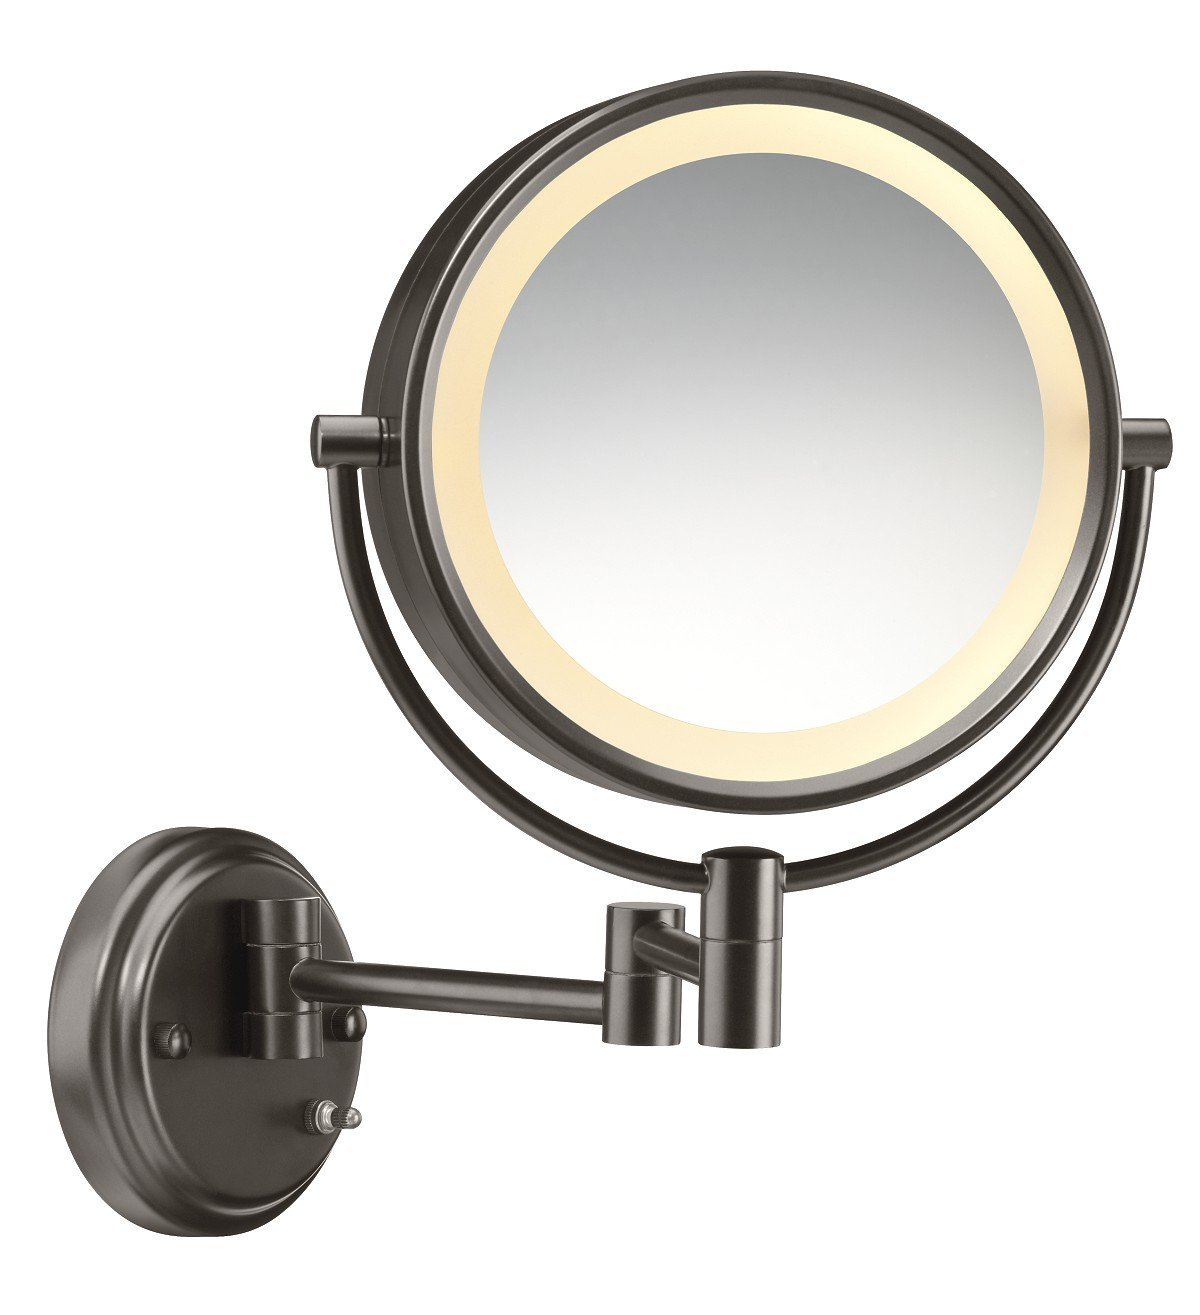 Conair Oval Lighted Mirror | Lighted Makeup Mirrors Walmart | Conair Lighted Makeup Mirror